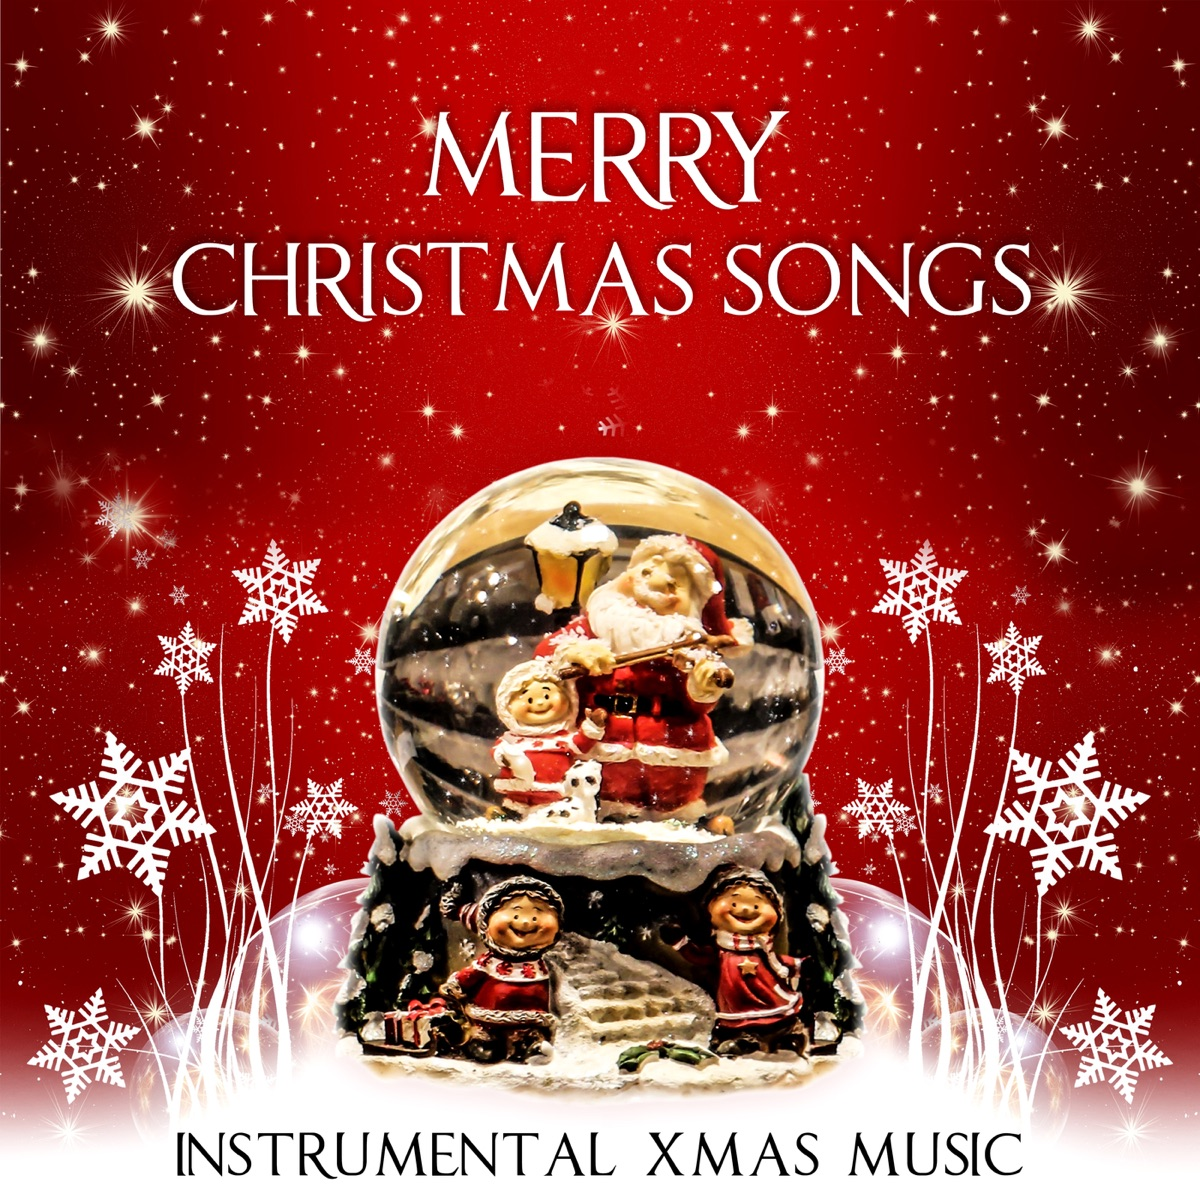 Christmas Song Covers Youtube – Huis Design Interieur